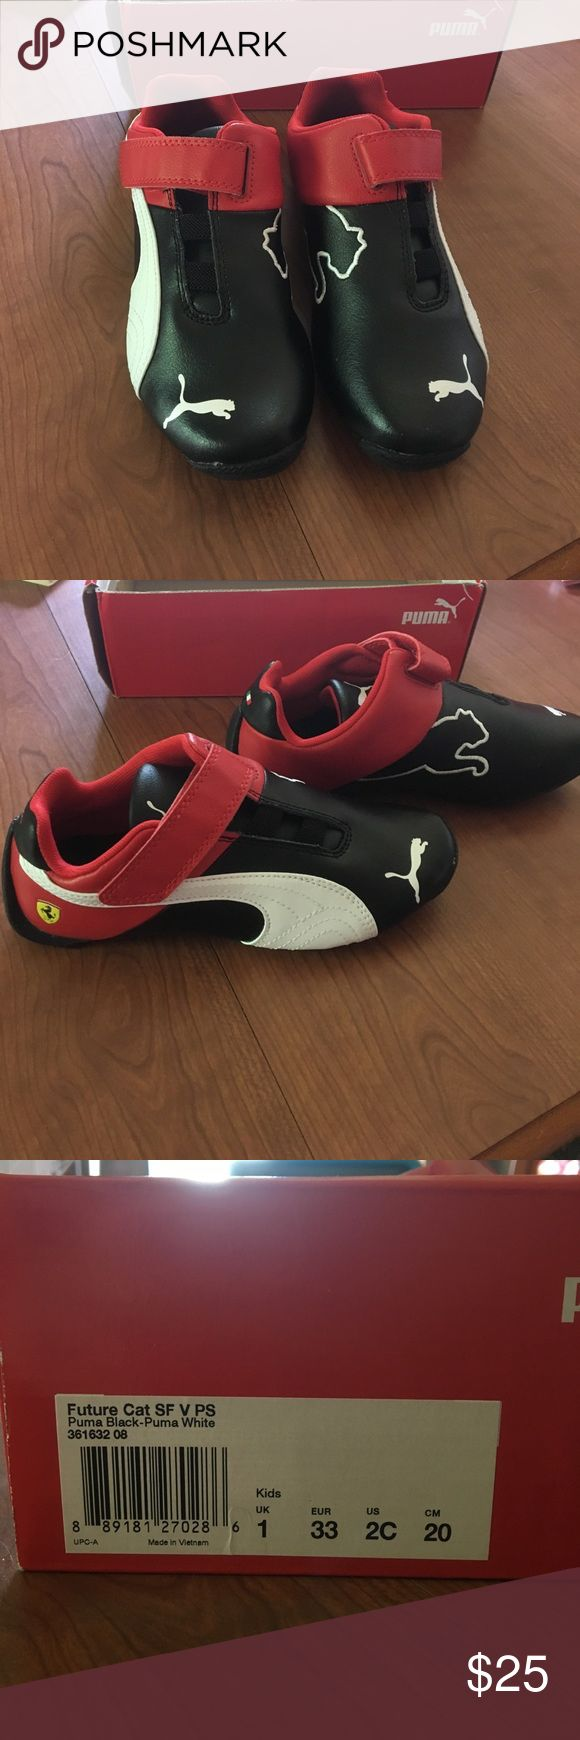 PUMA kids shoes Brand new, never been worn. Have box it came in with no lid. Puma Shoes Sneakers